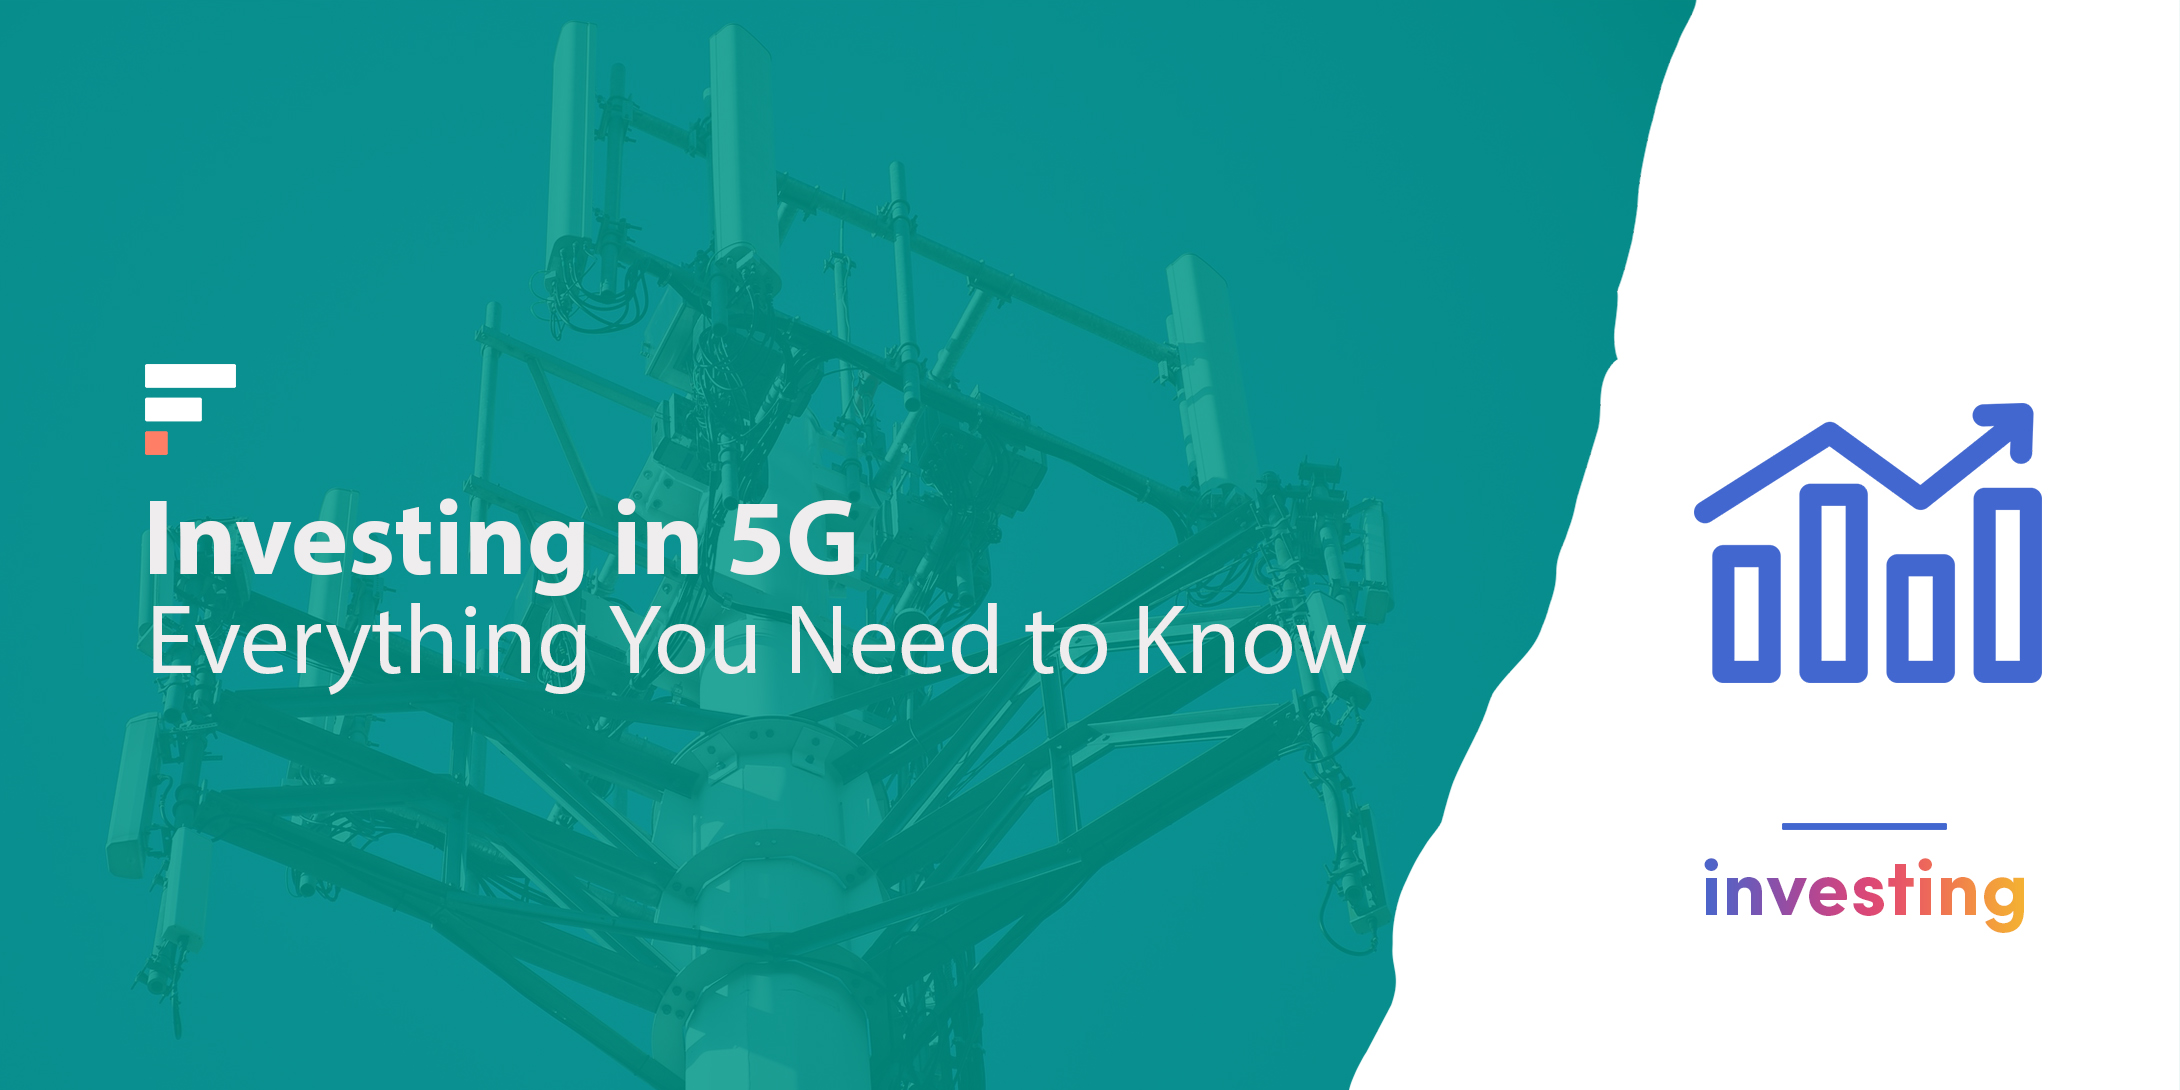 Investing in 5G: Everything You Need to Know